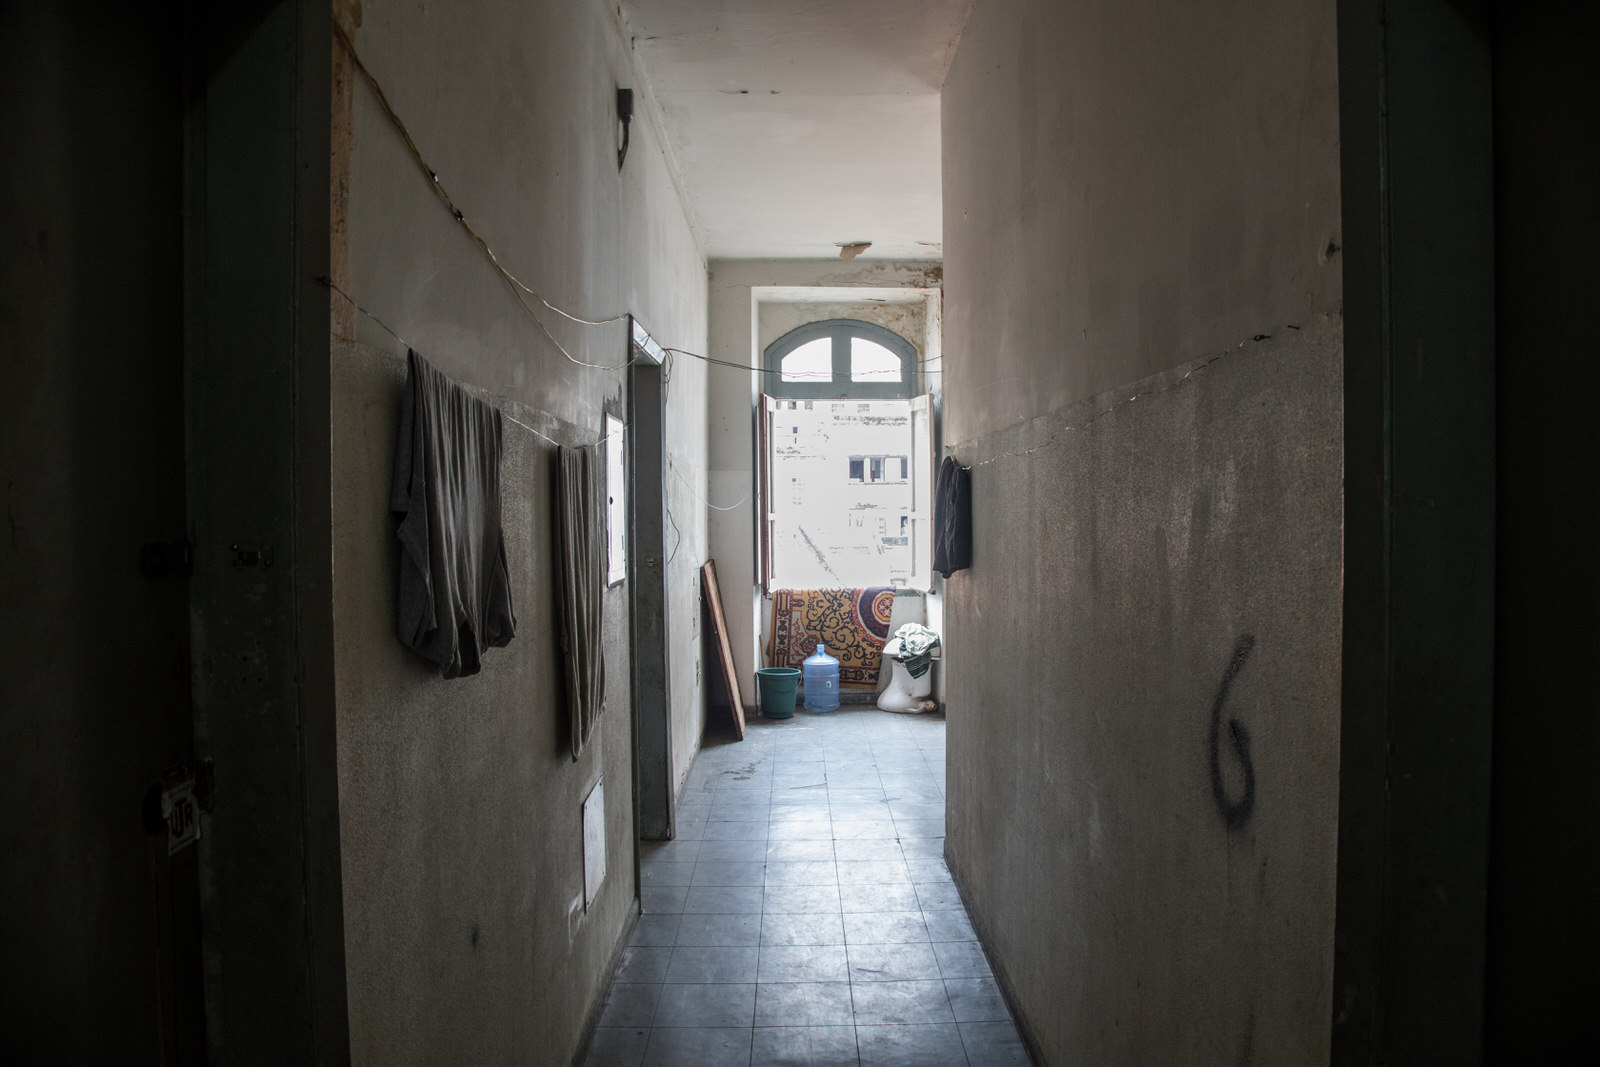 The occupation is an act of resistance which aims to fight for dignified housing, converting the building into a place for family living and, in the wider context, to explore the space for occupation movements in Salvador.